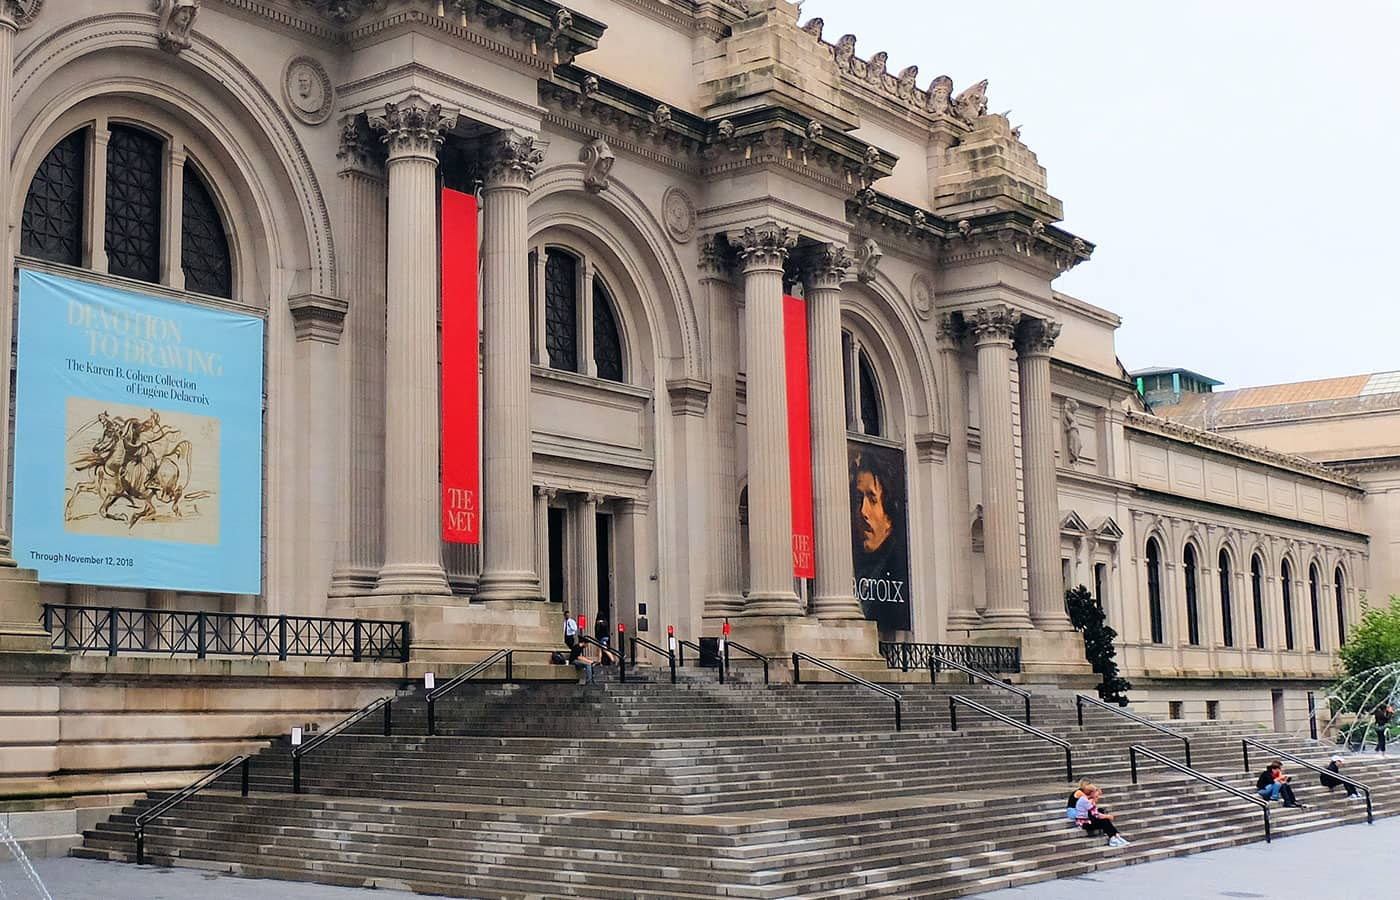 Gossip Girl Tour - Steps of The Met